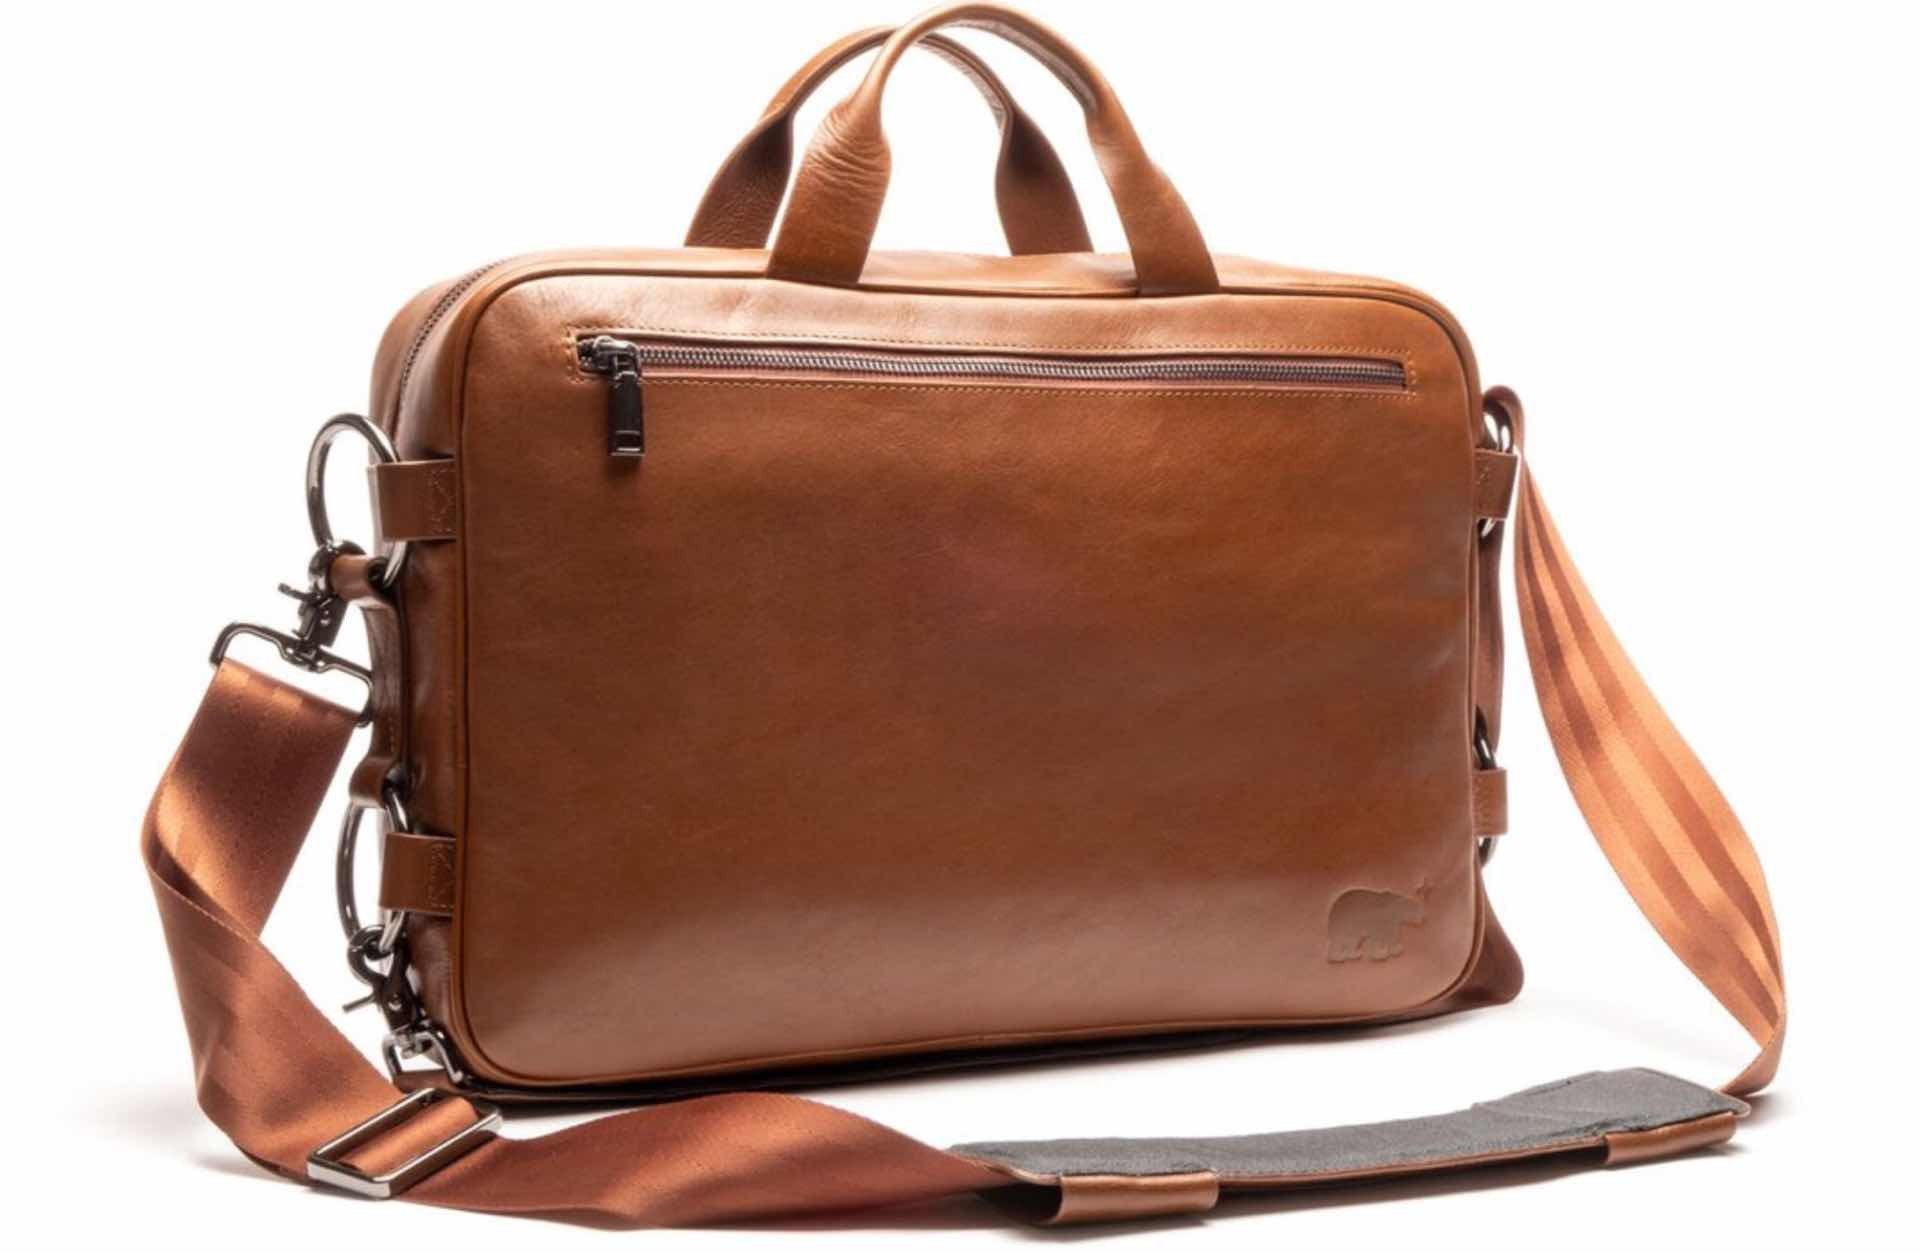 Hillside Industries' convertible Meridian 2.0 bag. ($275 for leather, $175 for nylon)